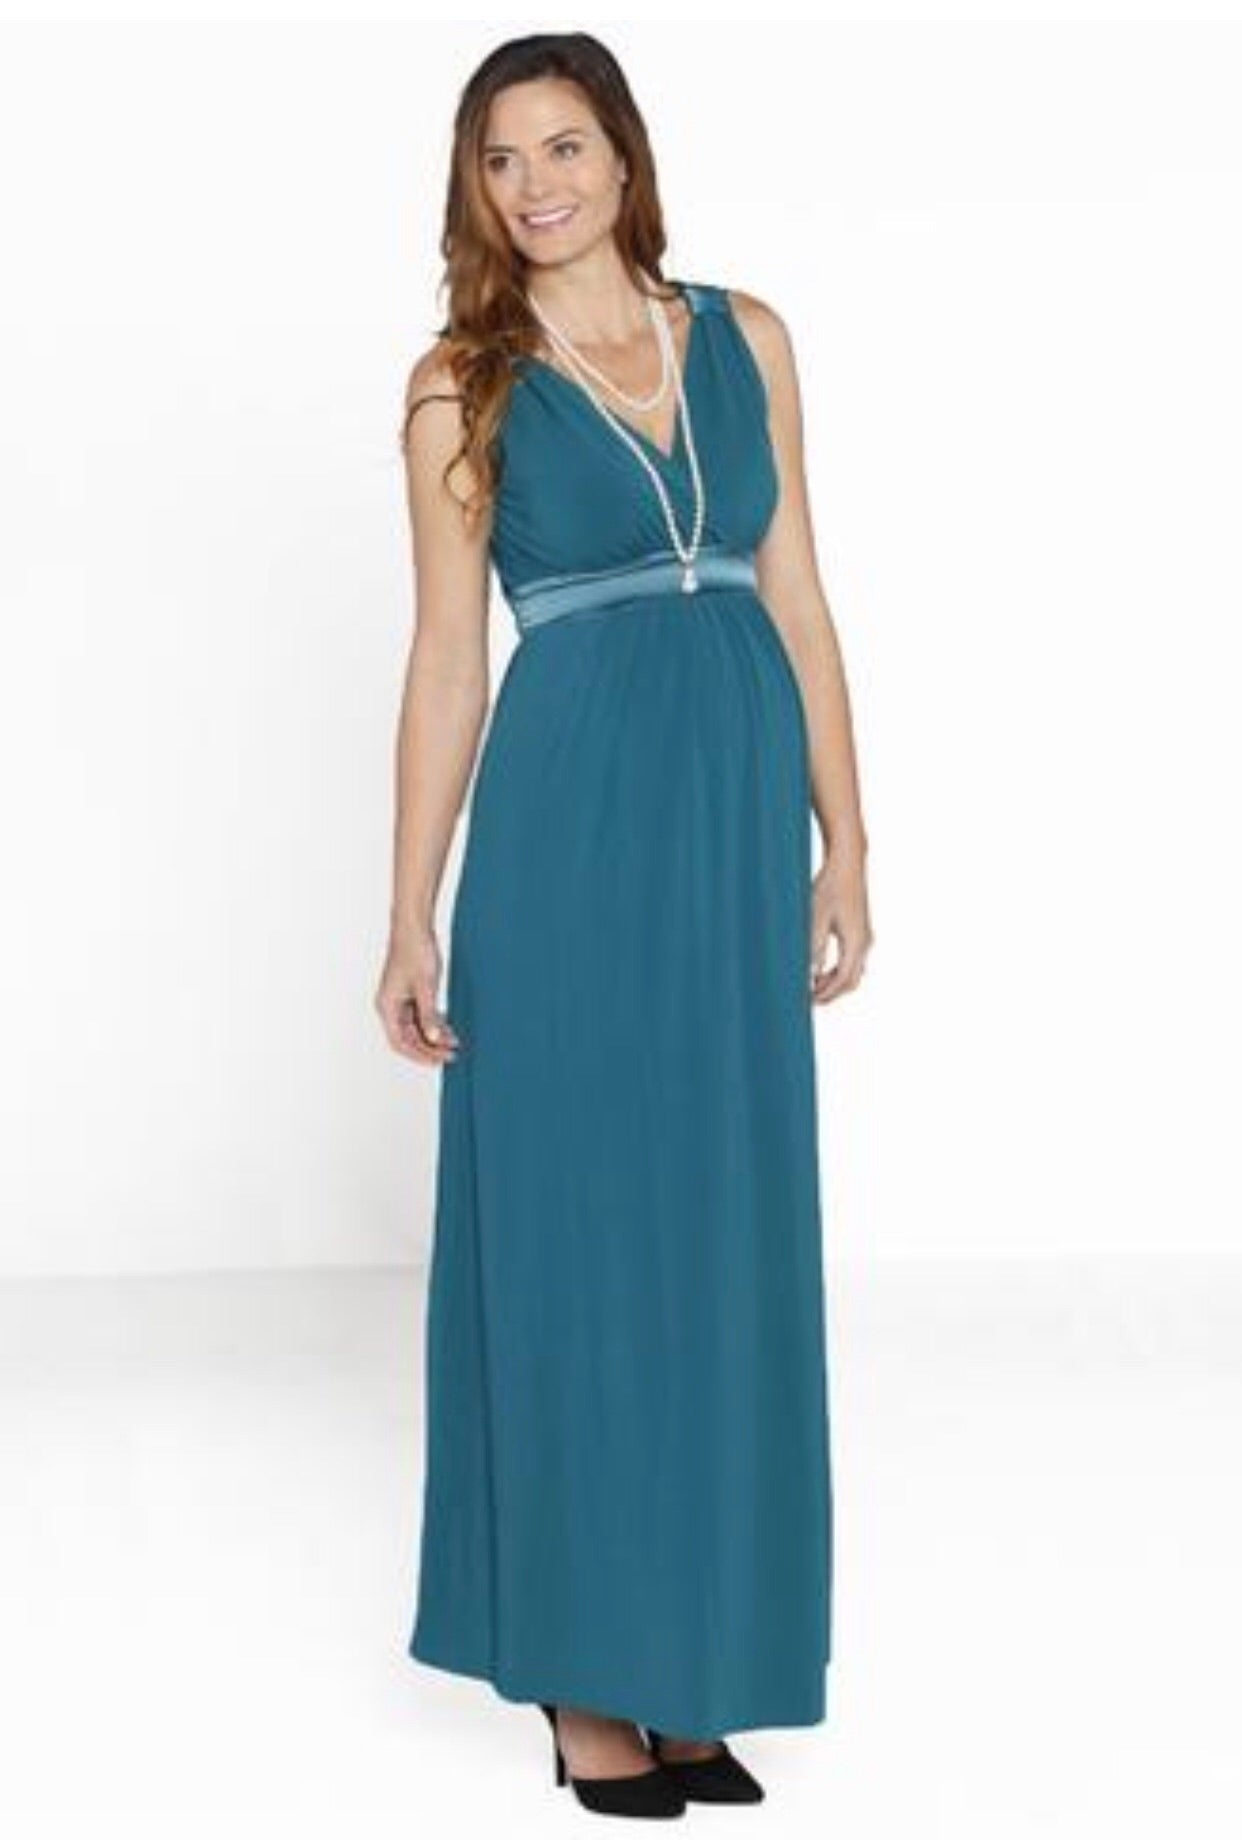 Angel Maternity 'Sue' Maternity & Nursing Formal Dress